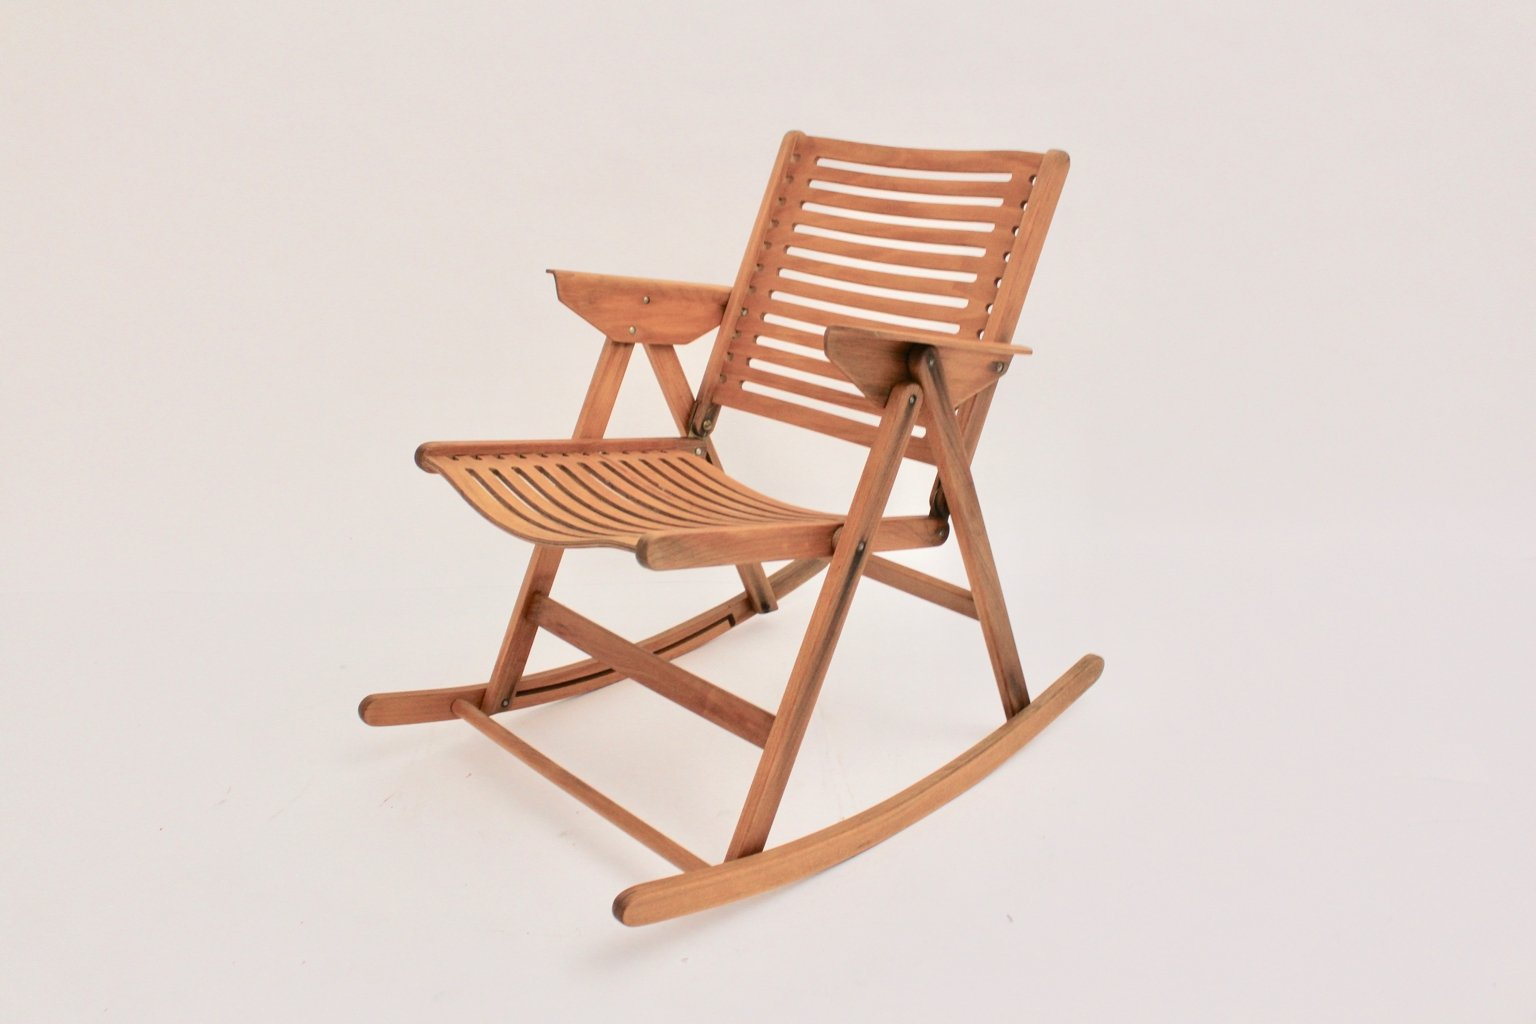 foldable rocking chair pads for chairs model rex by niko kralj 1950s sale at pamono price per piece